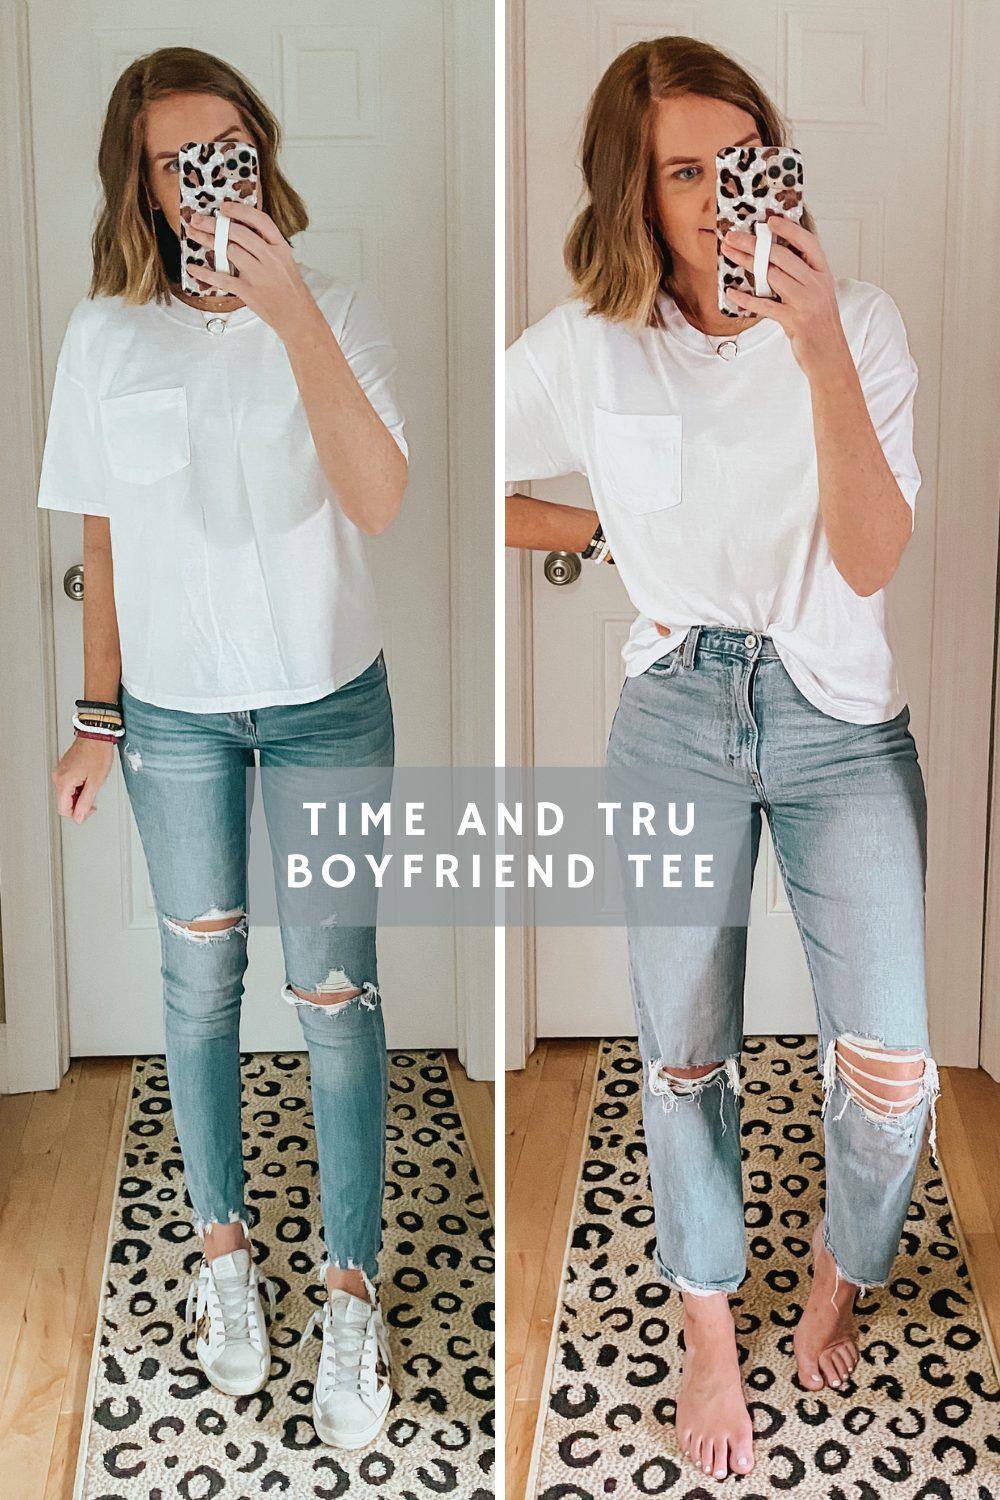 Time and Tru boyfriend tee, The Best Women's White T Shirt